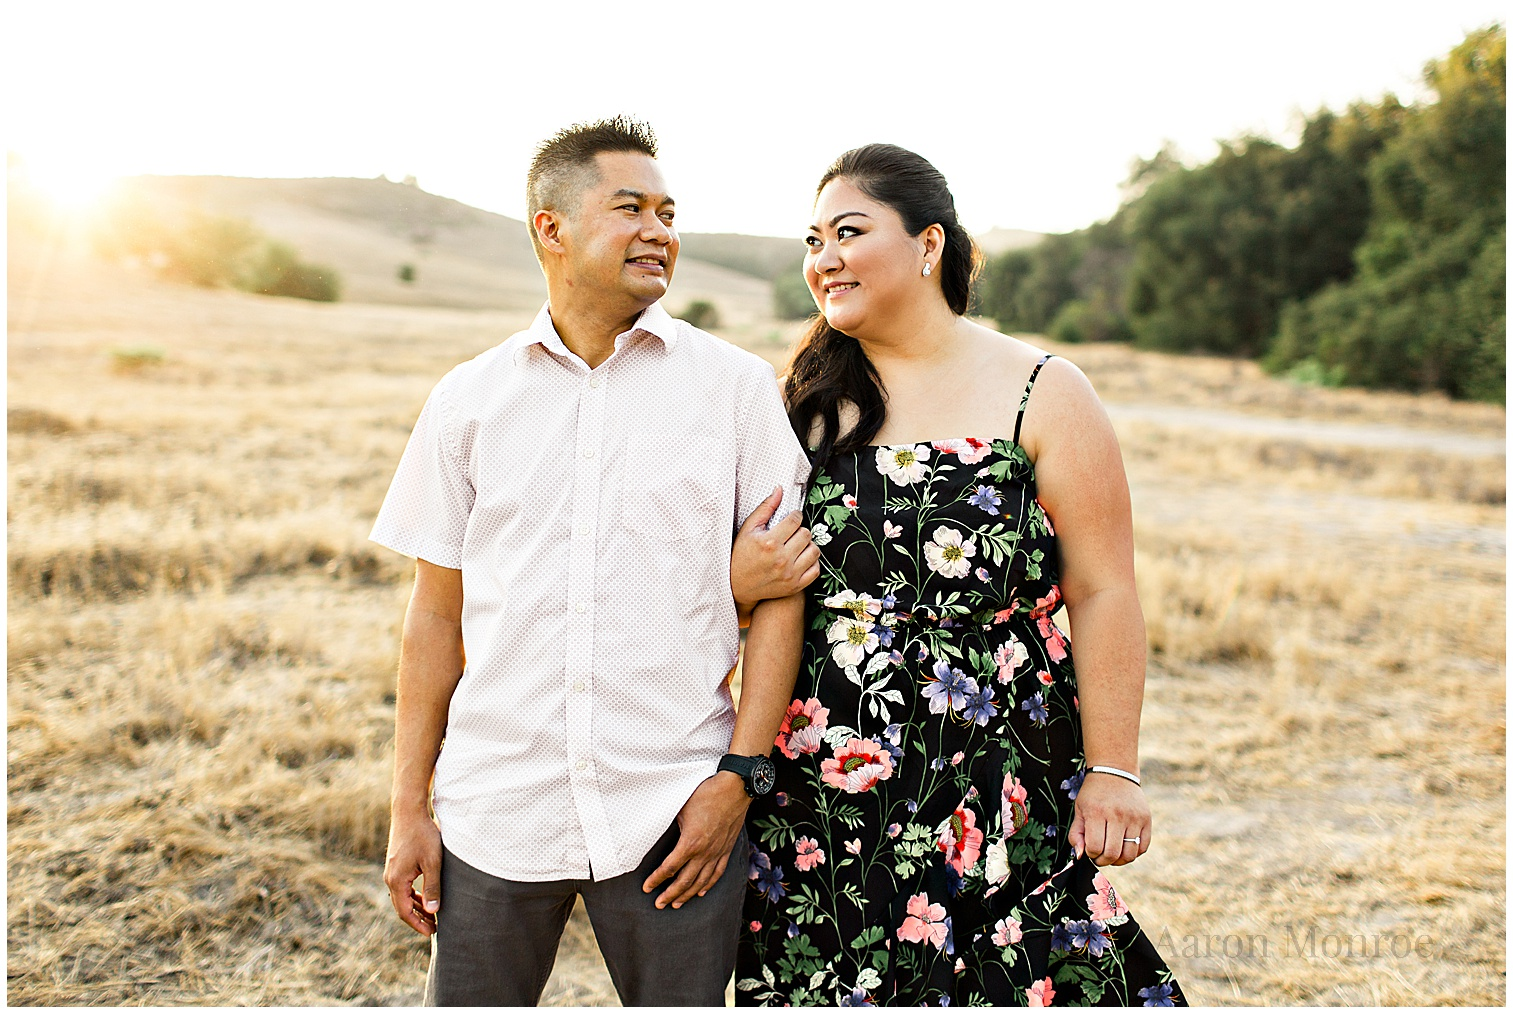 orange_county_engagement_photography_0874.jpg